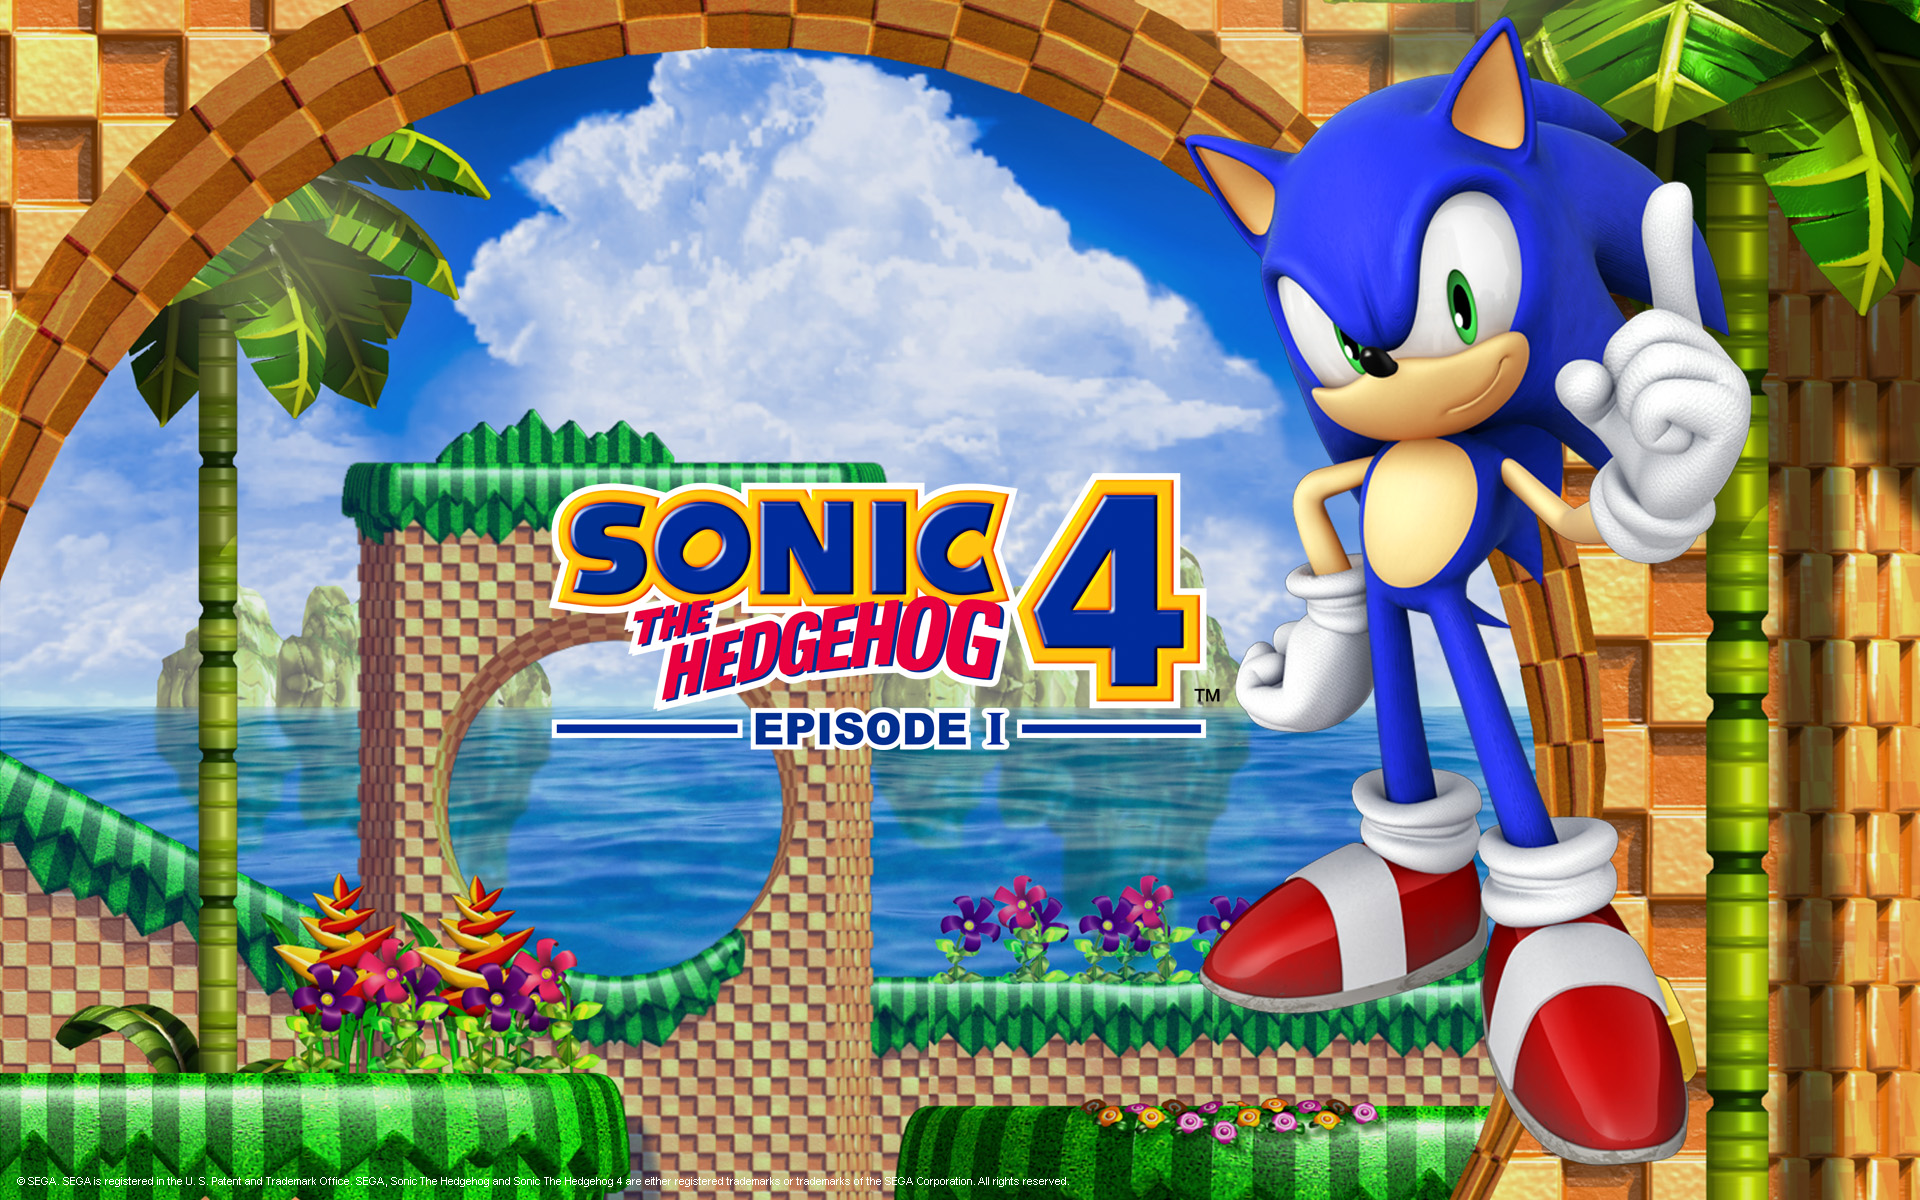 sonic the hedgehog 4 episode 1 wallpaper 217934. Black Bedroom Furniture Sets. Home Design Ideas